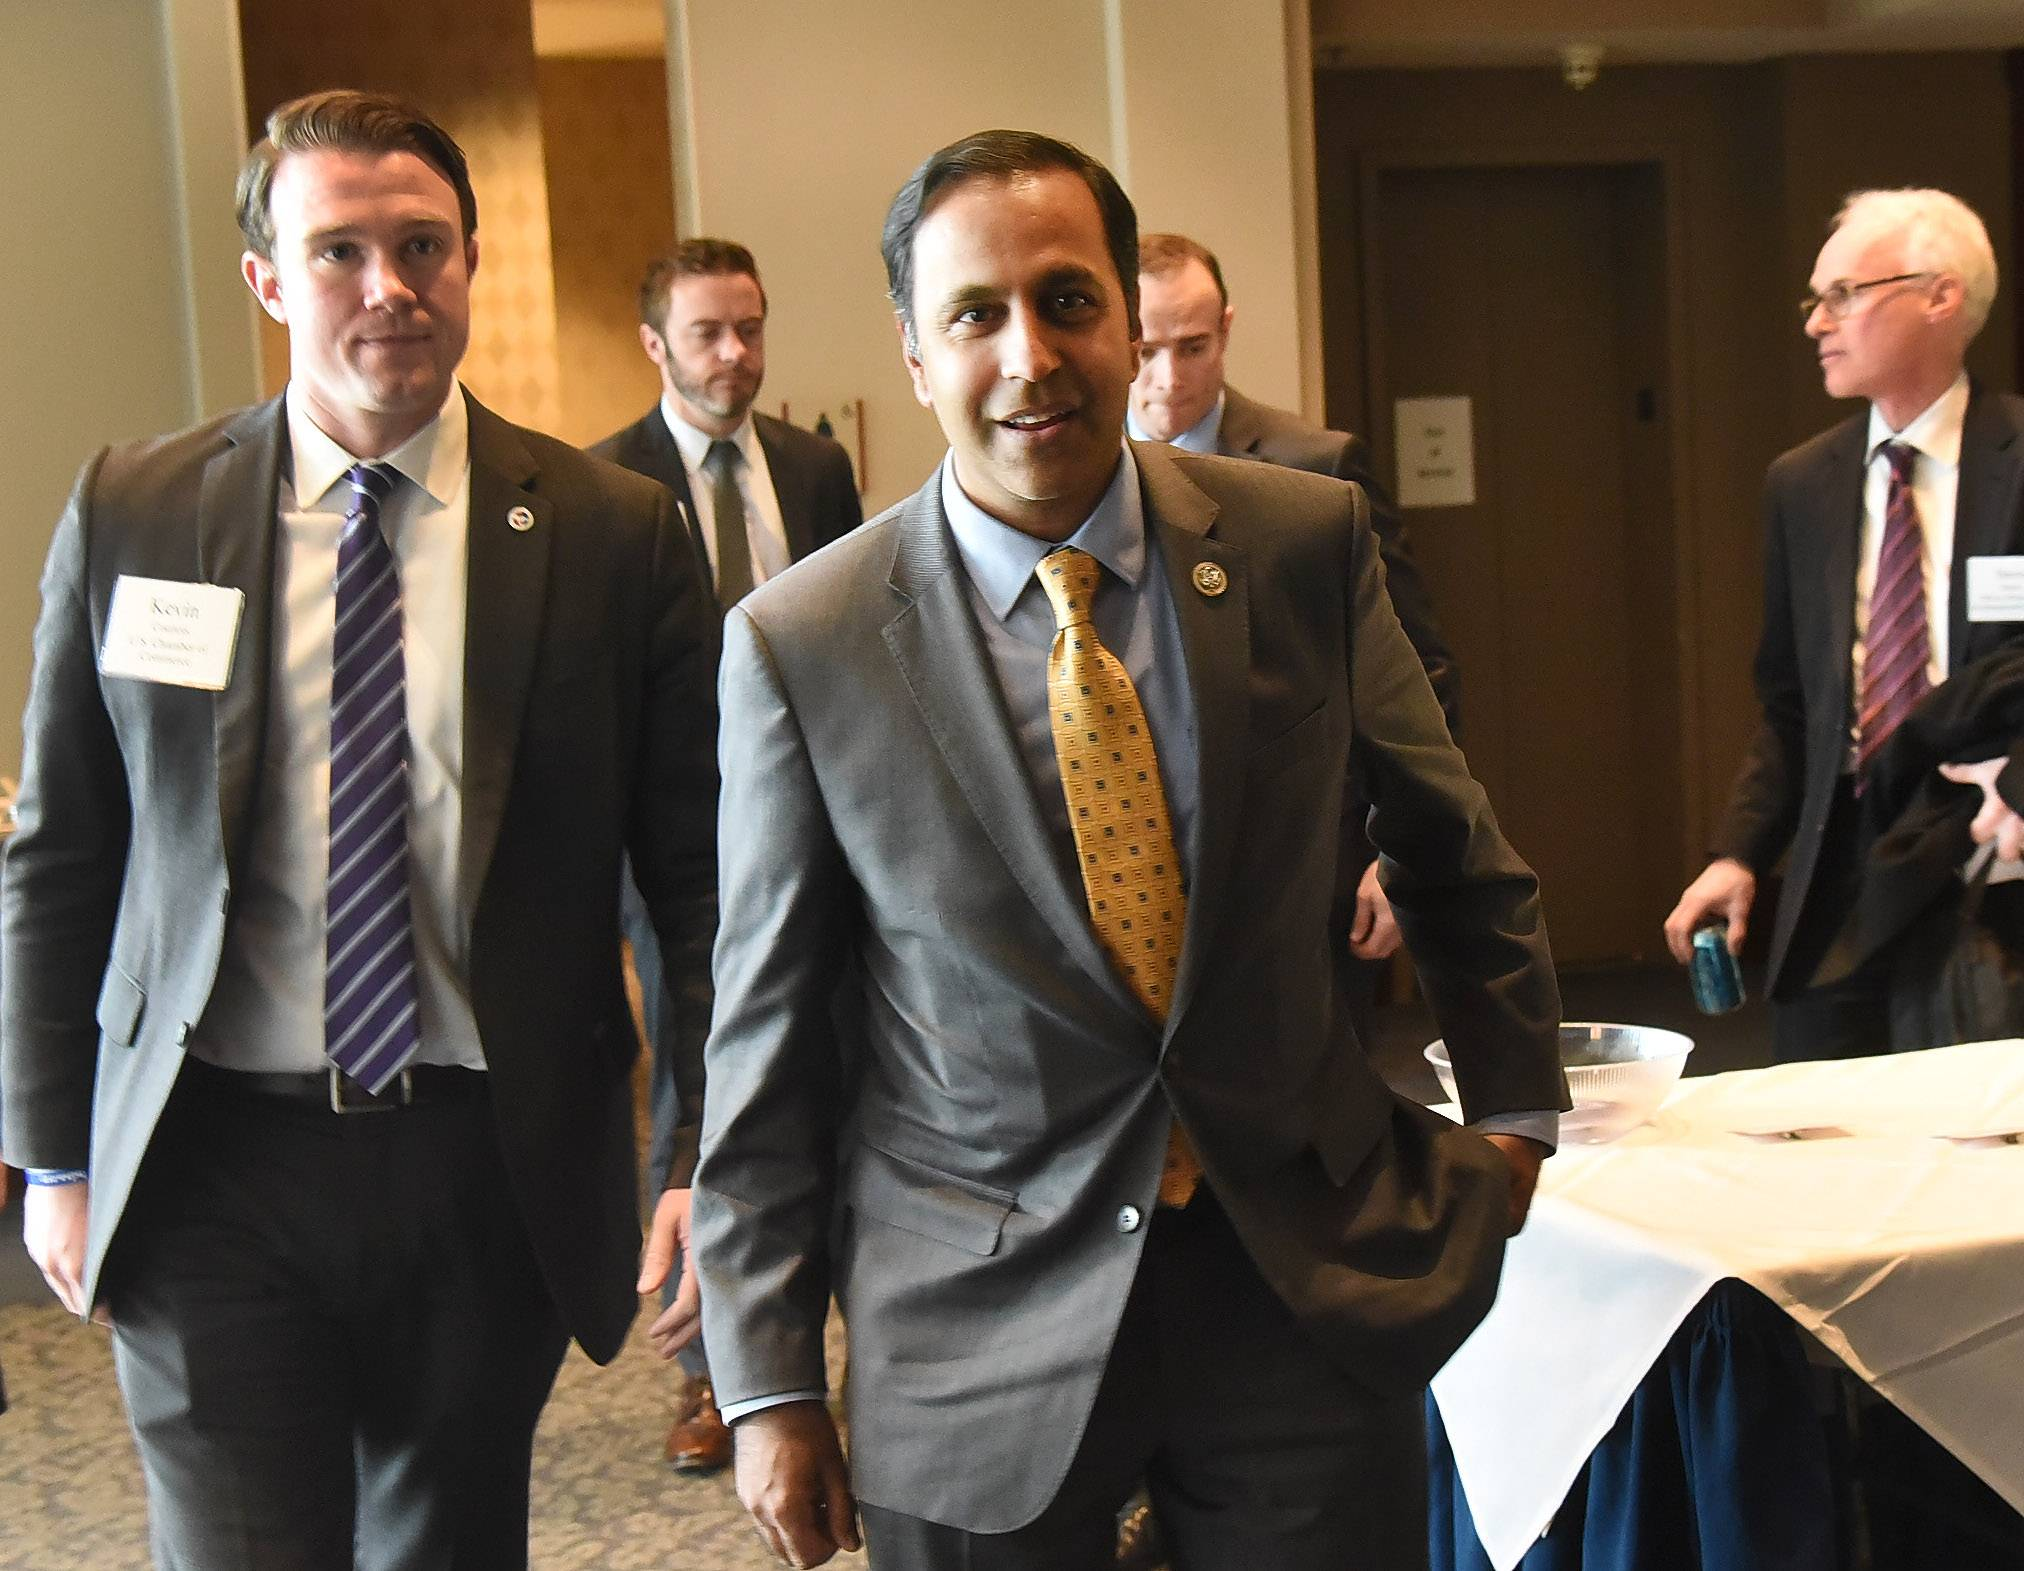 U.S. Rep. Raja Krishnamoorthi, a Schaumburg Democrat, arrives Monday to speak at Stonegate Conference and Banquet Centre in Hoffman Estates. It was part of the U.S. Chamber of Commerce's Freshman Forum series.